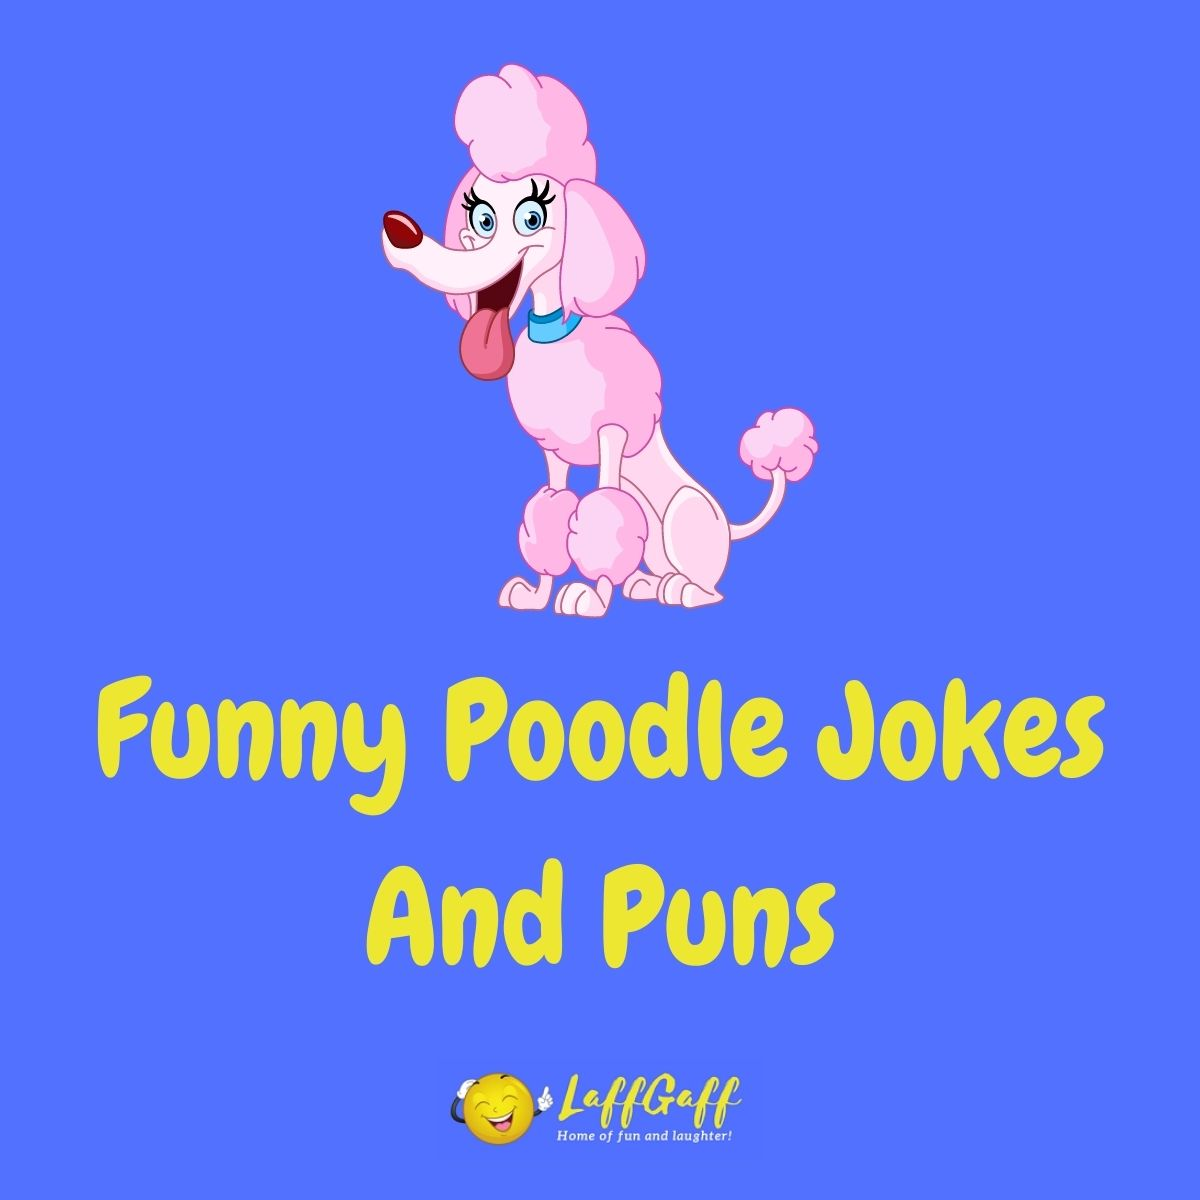 Featured image for a page of funny Poodle jokes and puns.